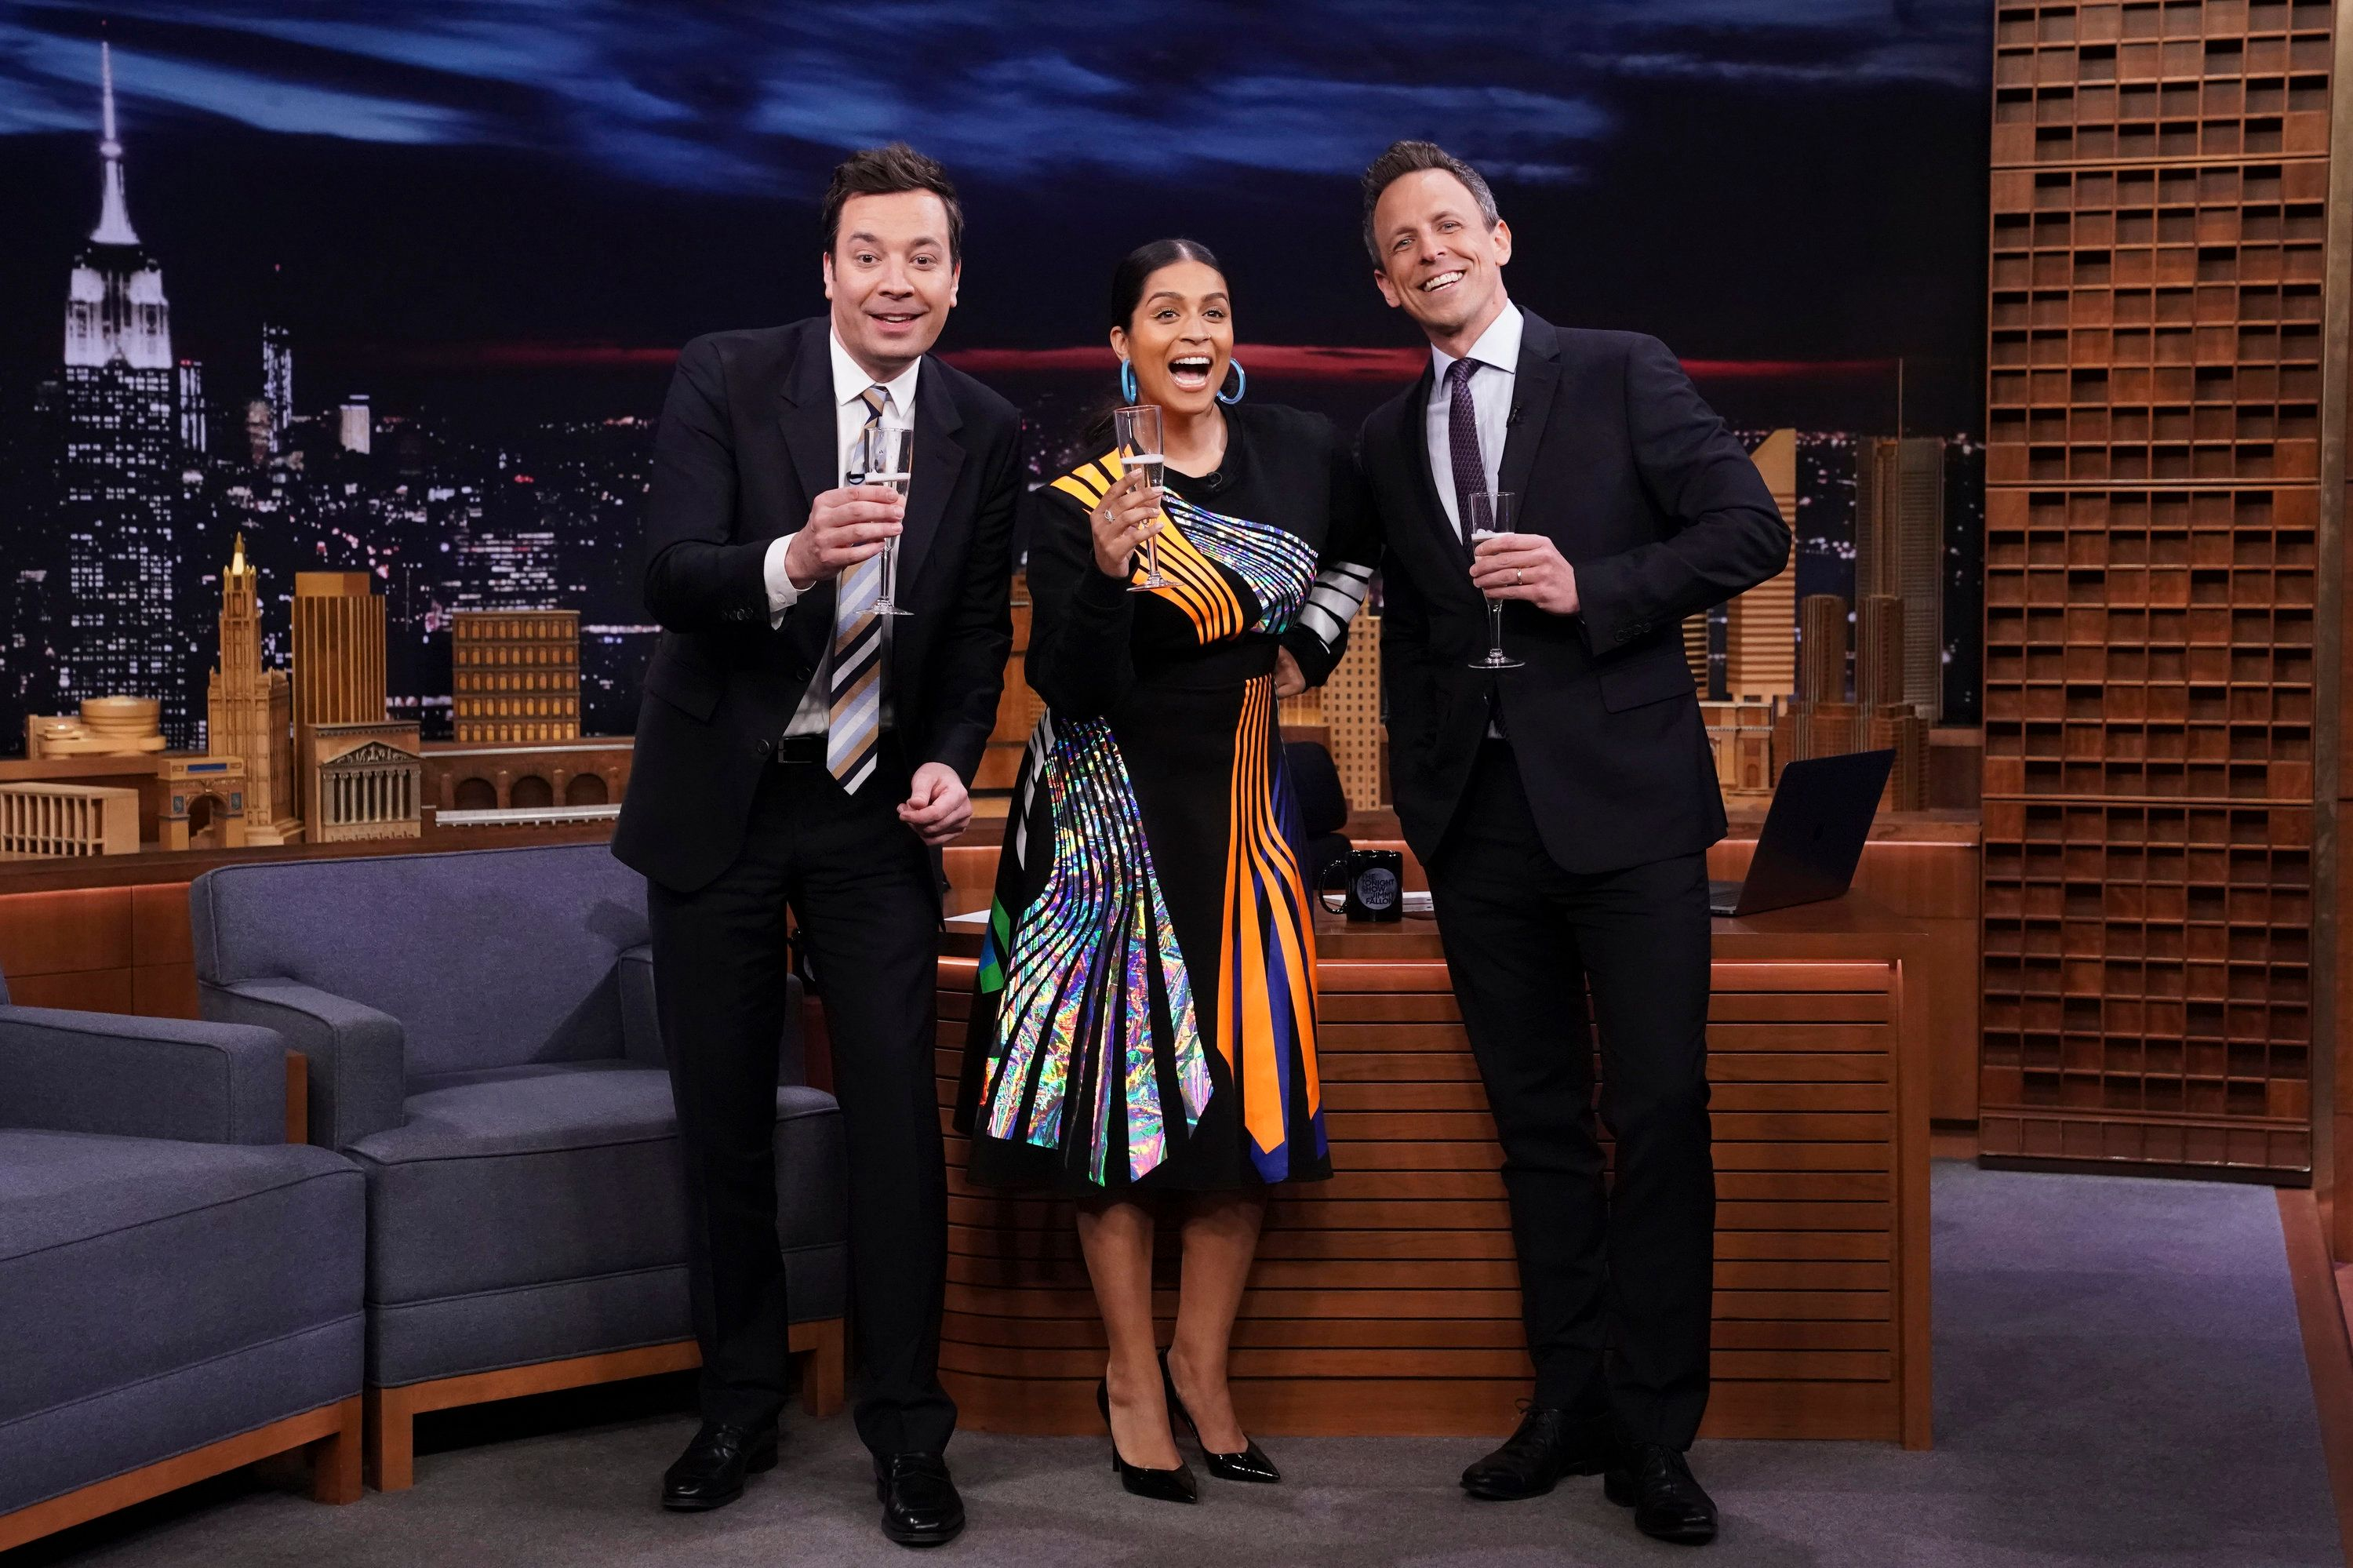 Lilly Singh becomes first YouTuber to host U.S. talk show